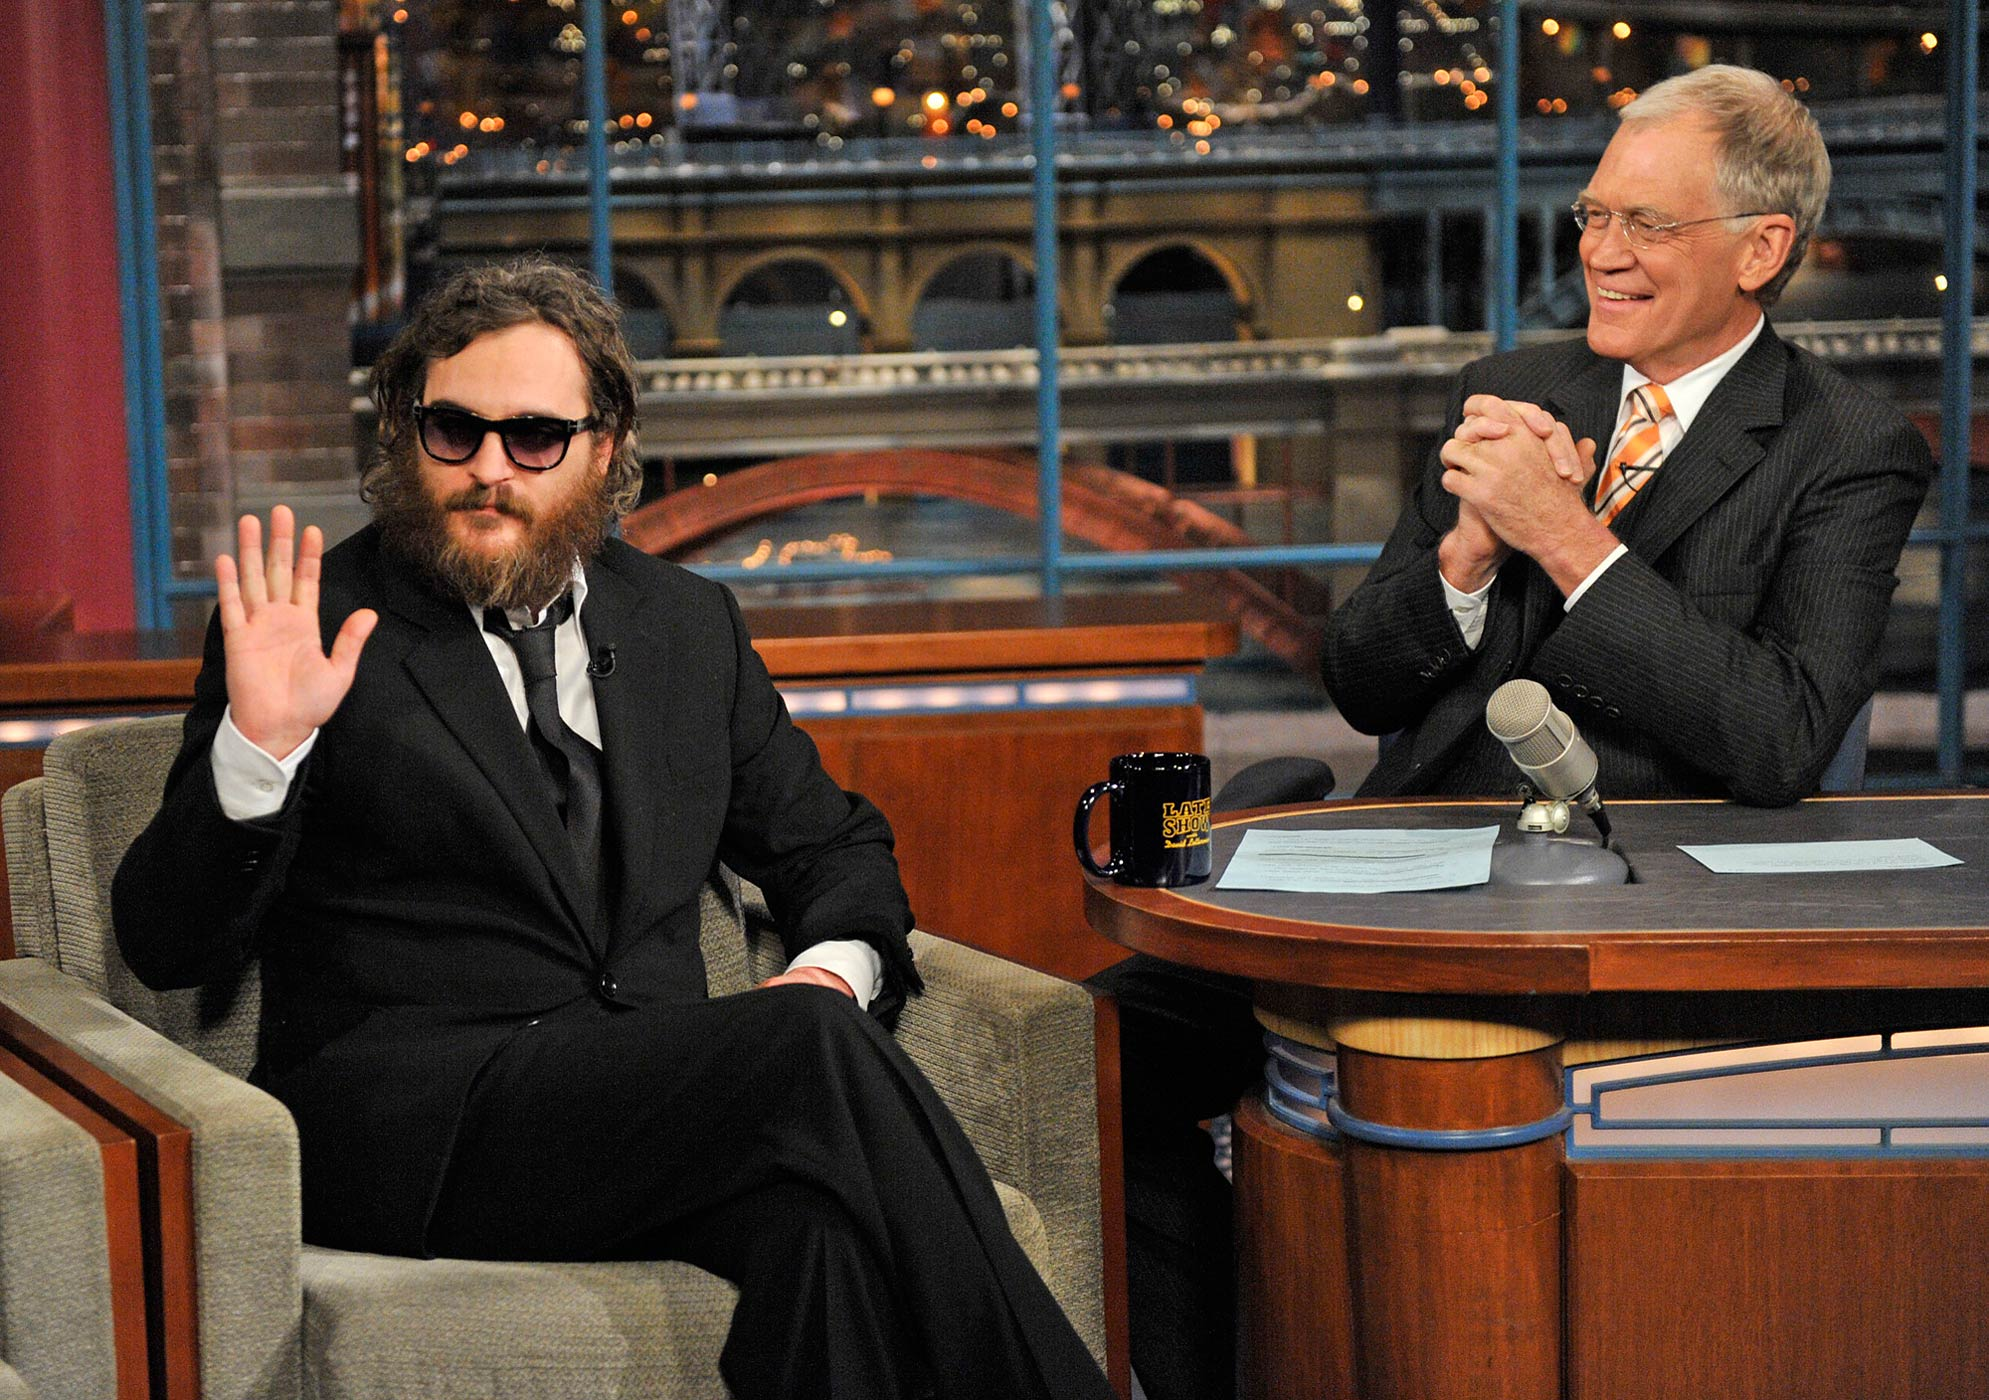 Actor Joaquin Phoenix, waves to the audience during his interview with Late Show host David Letterman during the Late Show with David Letterman on Feb. 11, 2008.